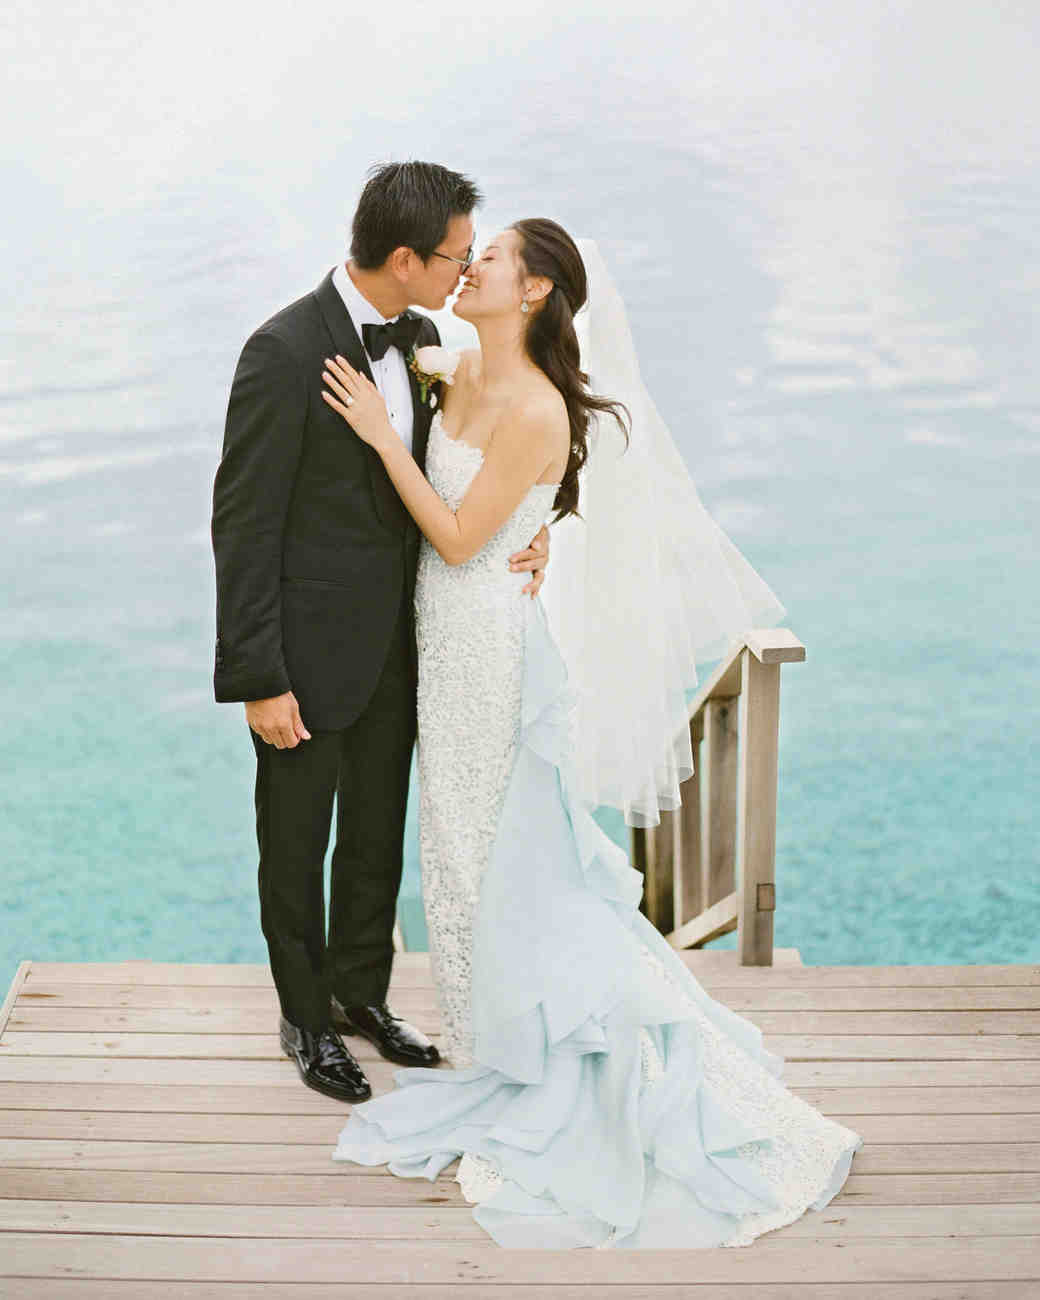 A Multi-Day Wedding in the Maldives | Martha Stewart Weddings